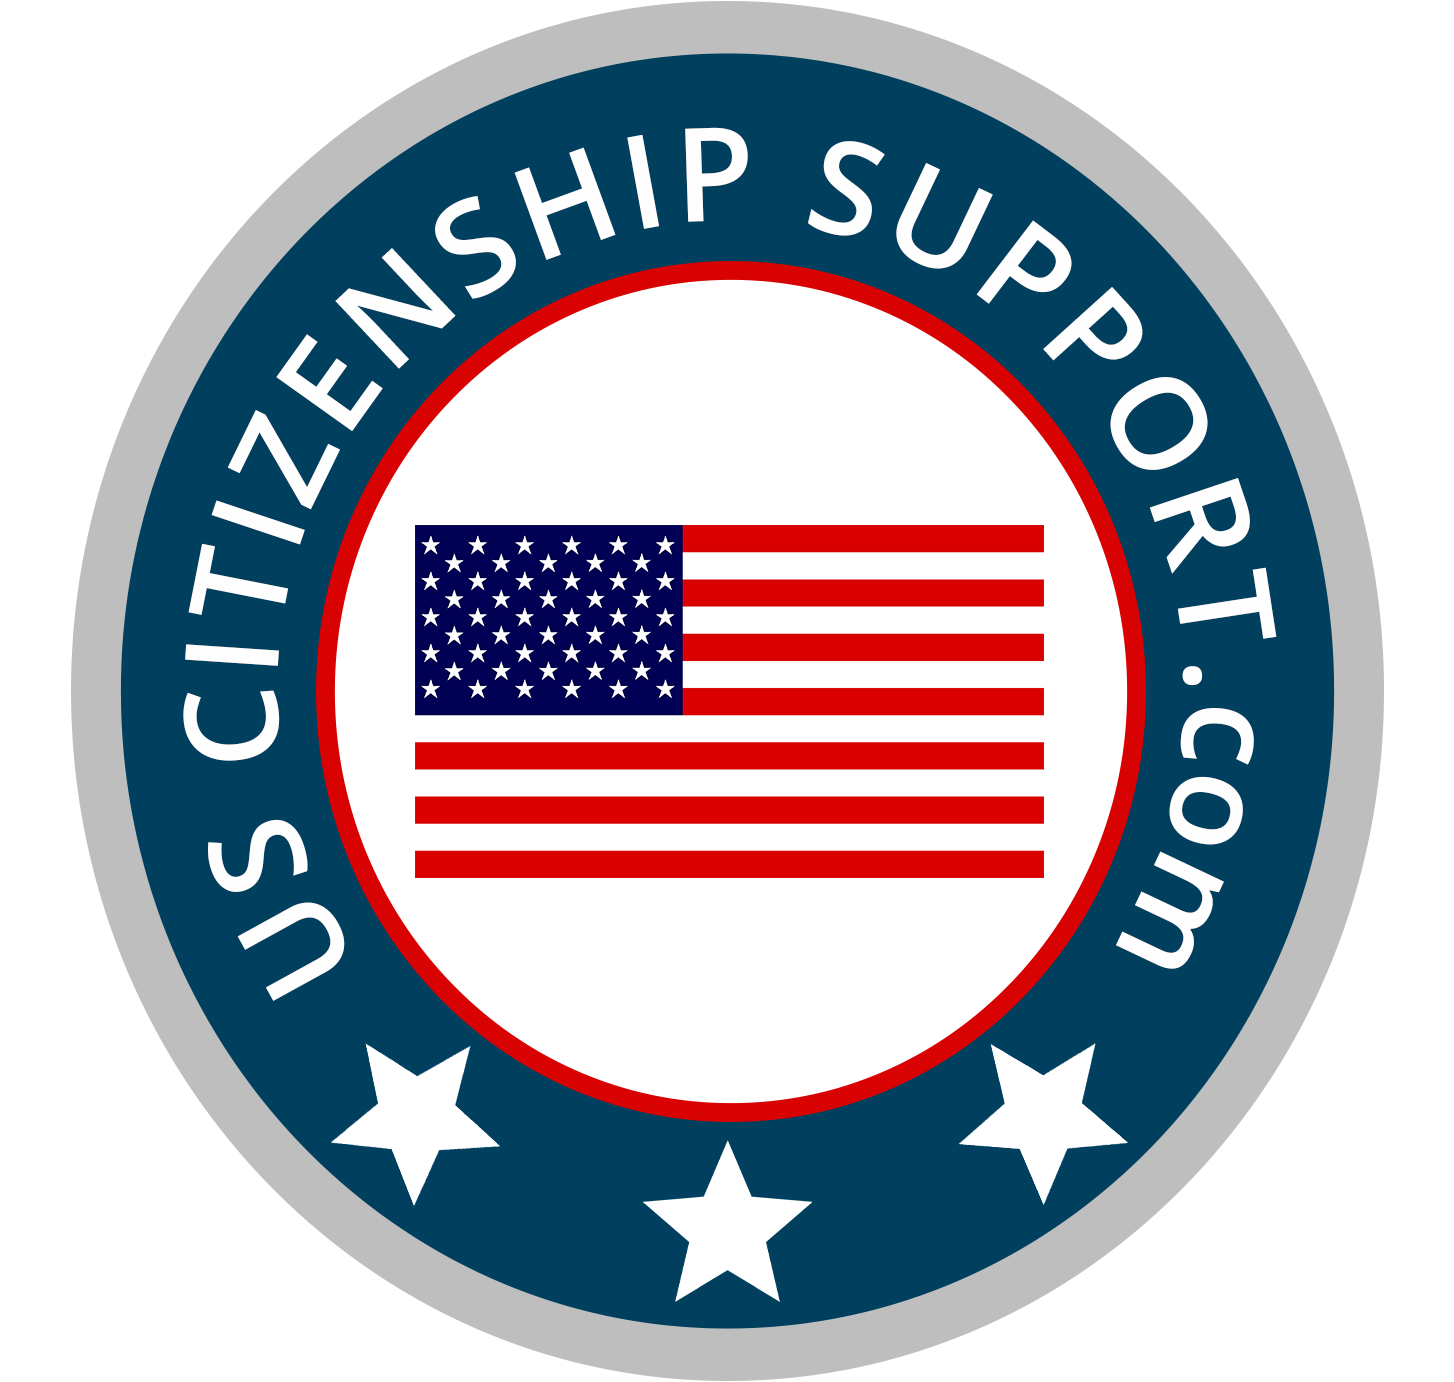 Citizenship: Top 6 Free Resources To Prepare For The U.S. Citizenship